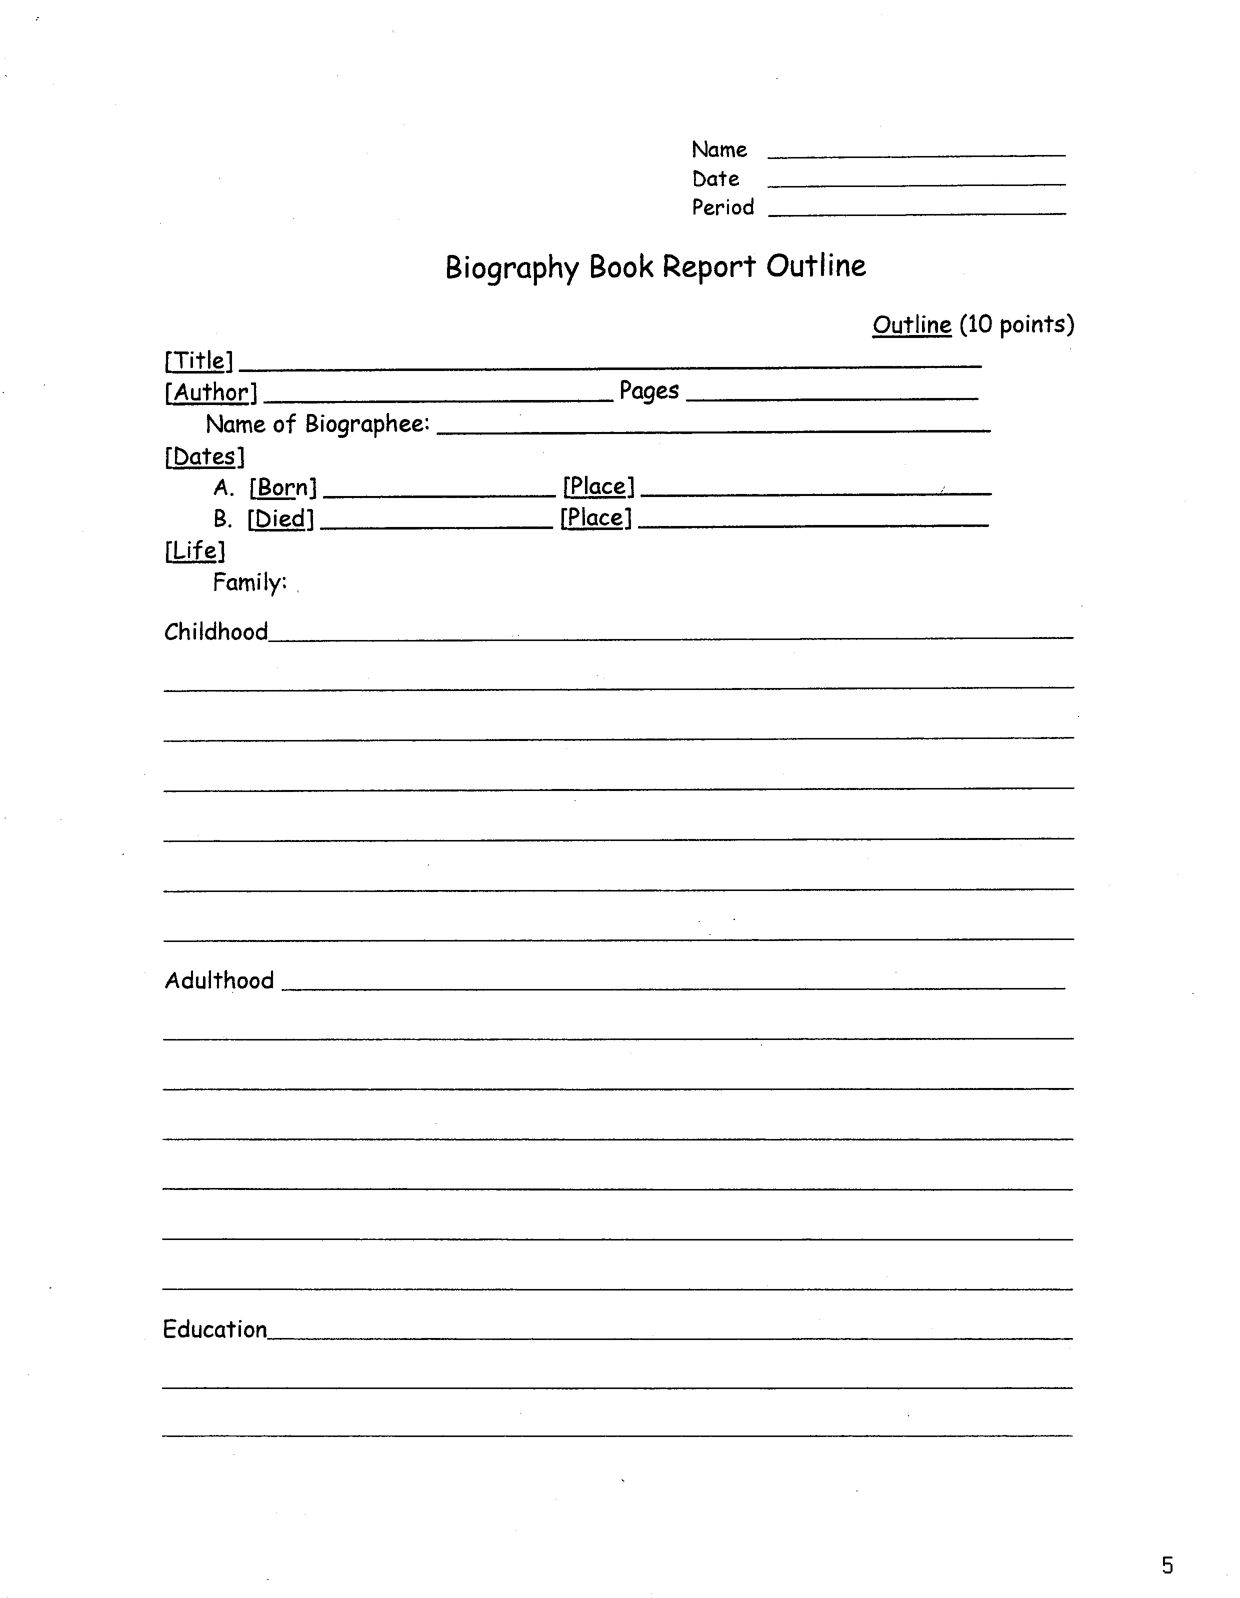 The Amusing 013 Biography Book Report Template Ideas